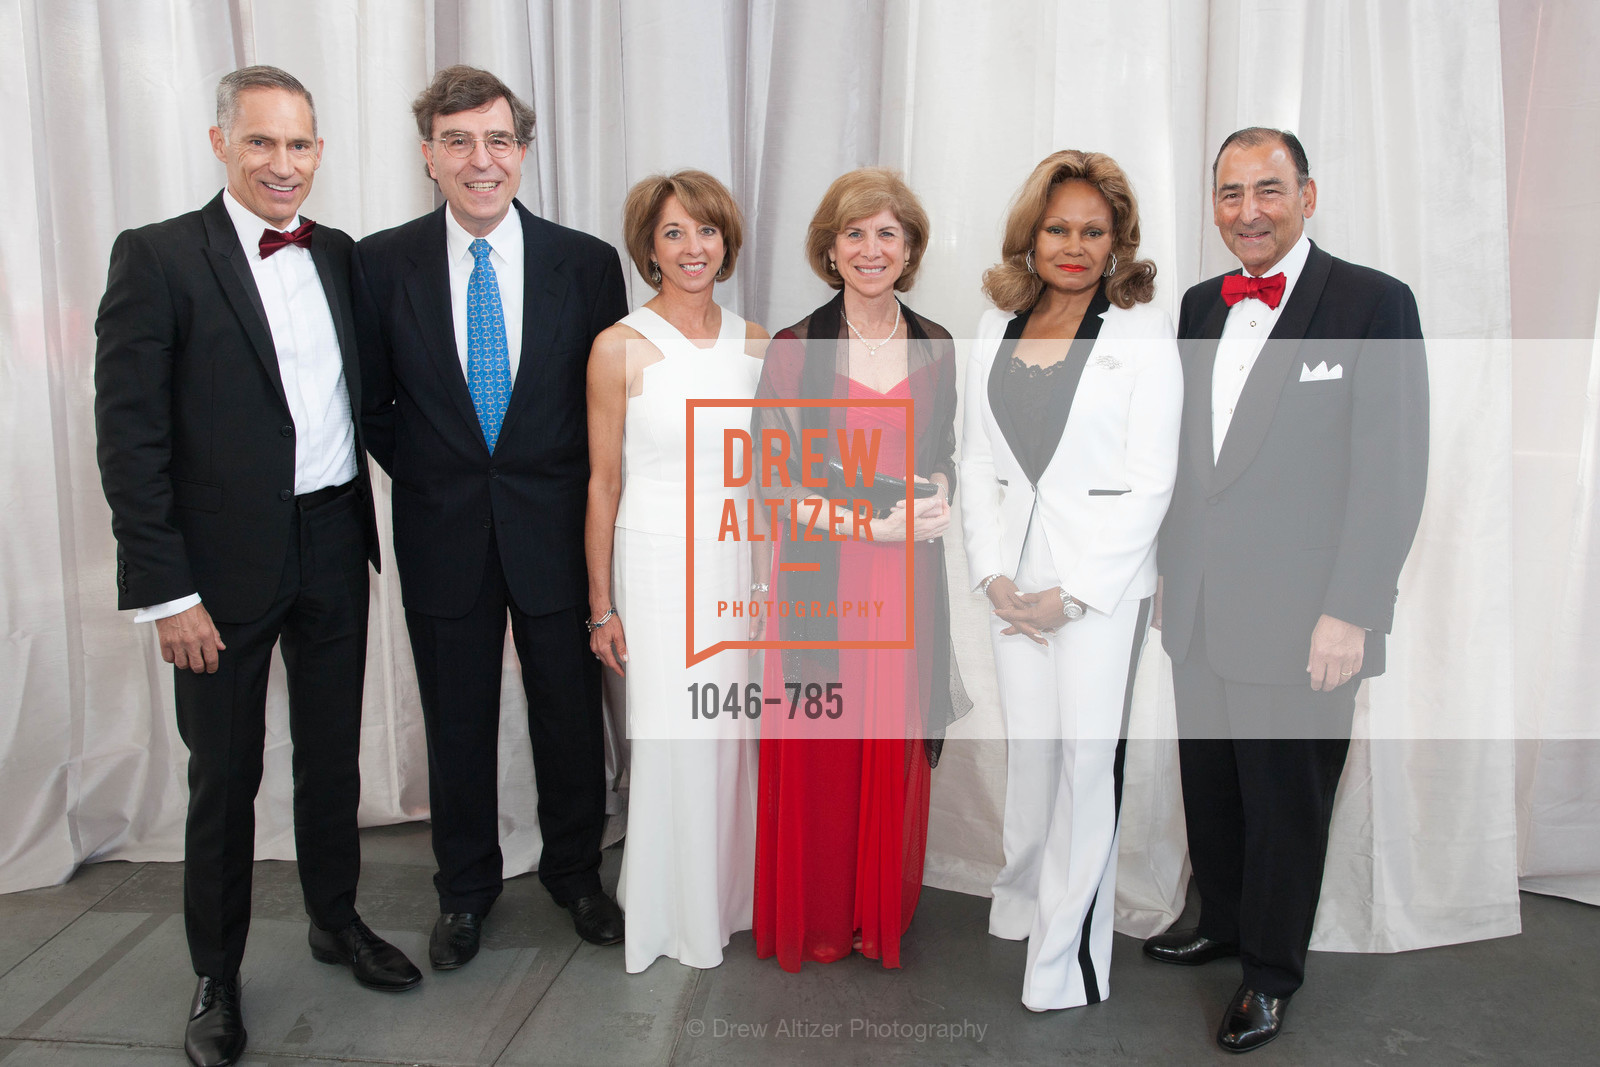 Mark Cloutier, Neal Litvack, Teresa Briggs, Gail McGovern, Janice Bryant Howroyd, Alexander Mehran, 2015 RED CROSS Gala, US, April 12th, 2015,Drew Altizer, Drew Altizer Photography, full-service agency, private events, San Francisco photographer, photographer california